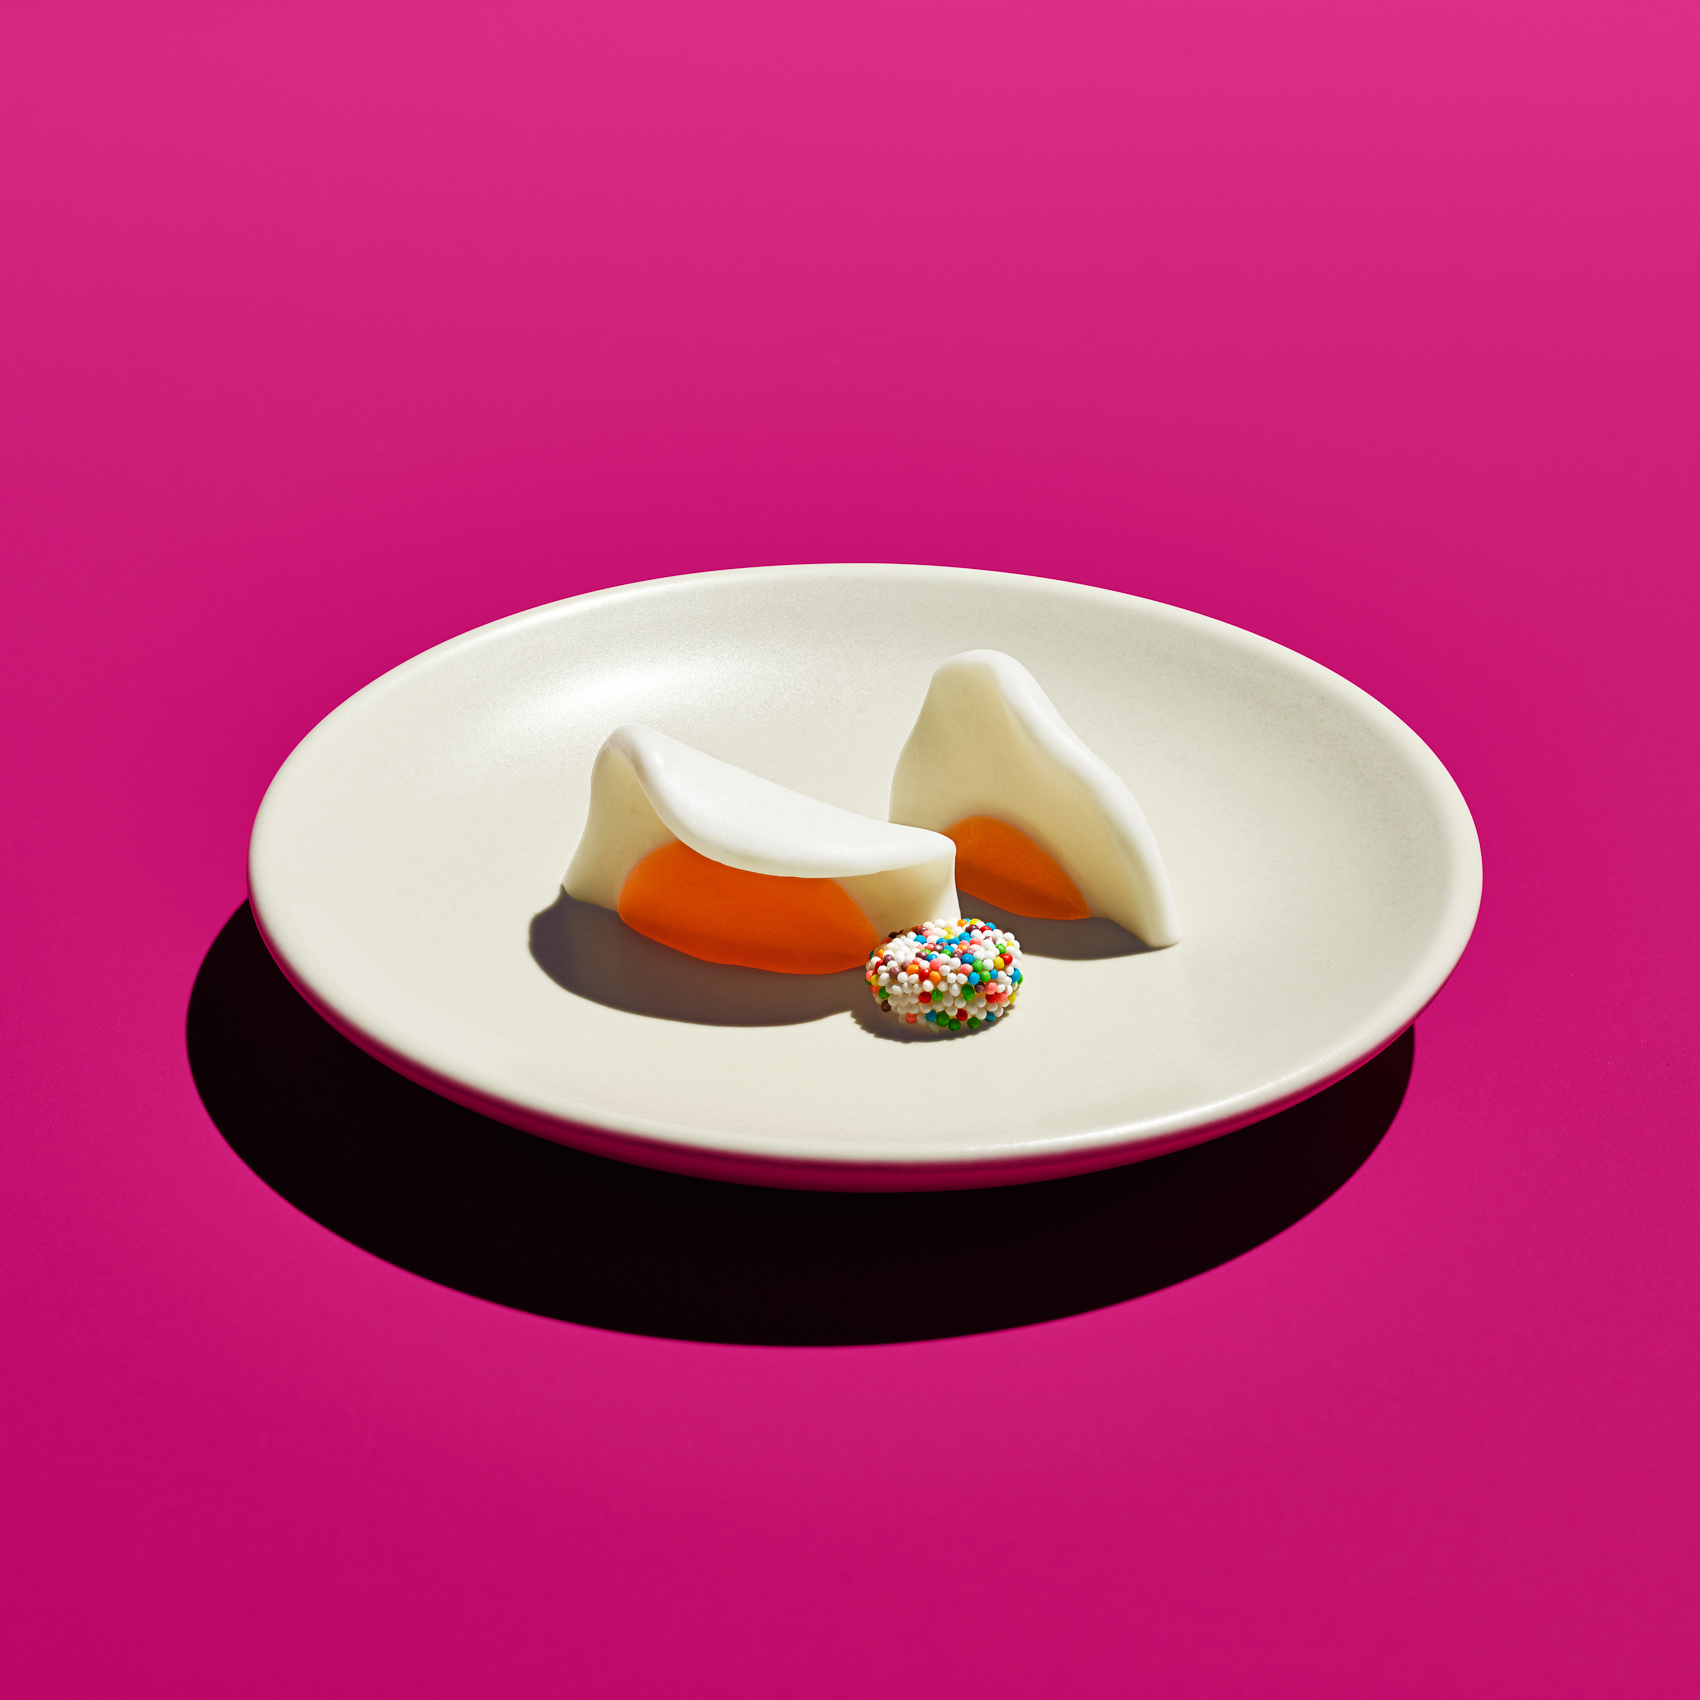 01_AlchemyDiscovery_Plate08_FOOD_FNL